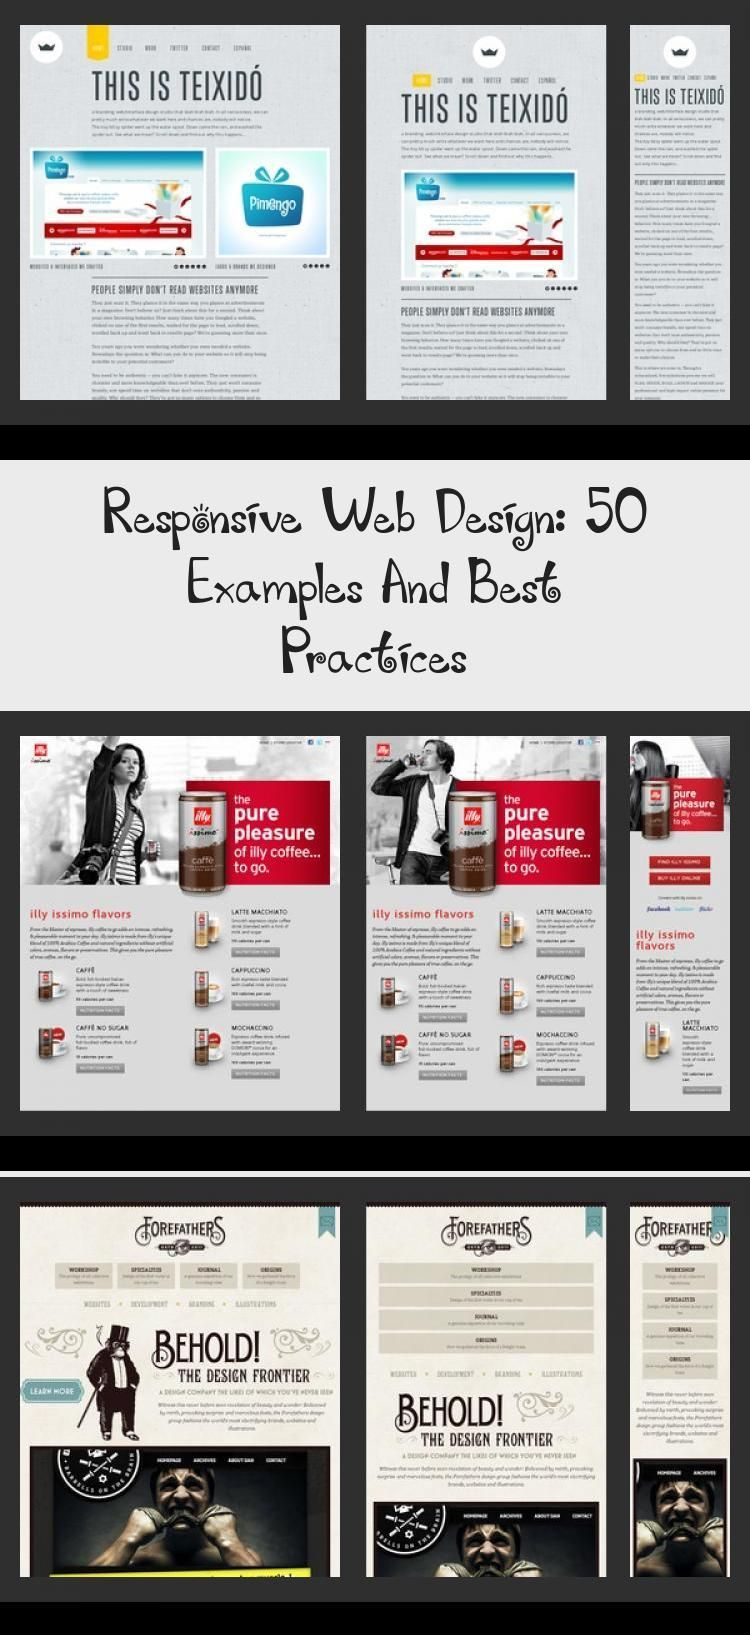 Responsive Web Design 50 Examples And Best Practices Design Responsive Web Design 50 Examples And Best P In 2020 Web Design Web Design Help Web Design Marketing